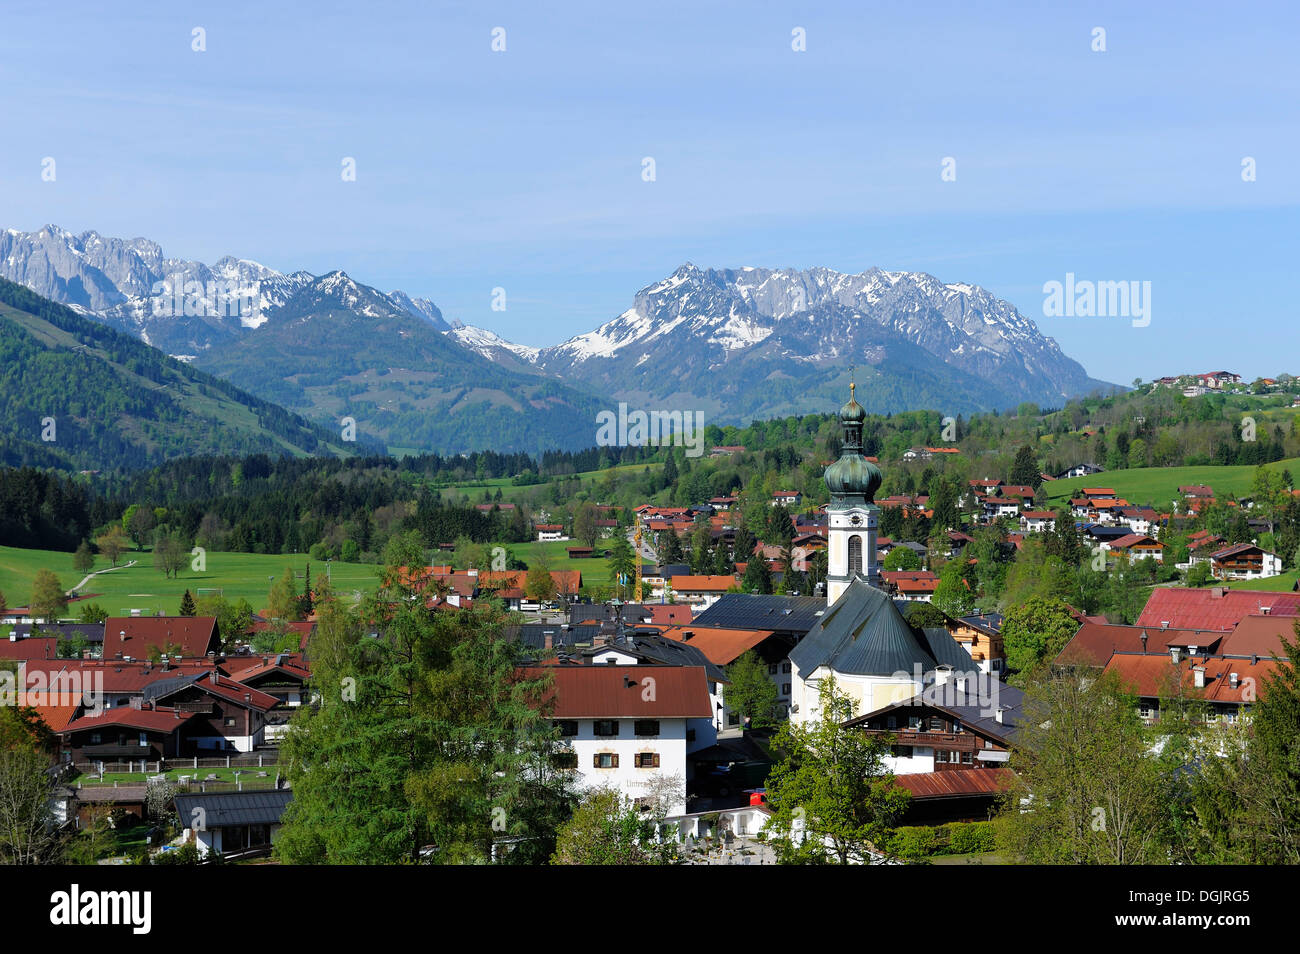 Reit im Winkl with parish church of St. Pancras, mountains Wilder Kaiser and Zahmer Kaiser at back, Chiemgau region - Stock Image